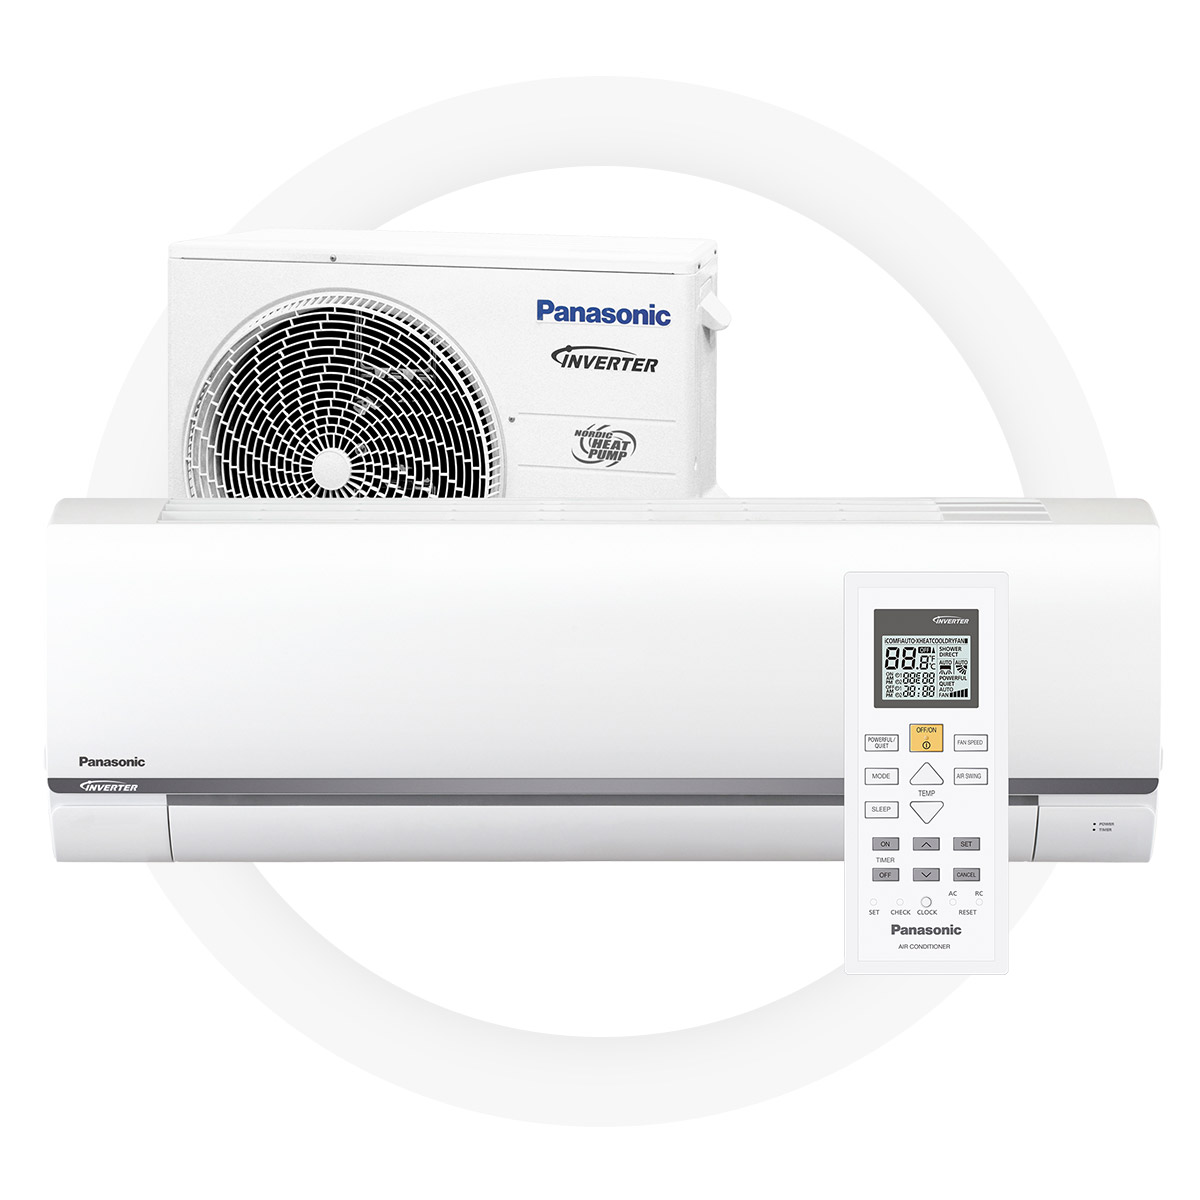 Panasonic cz25-tke - Good SCOP 4,1 offers significant savingsGreat energy efficiency on heating – A++l+8/+15°C temperature maintenance modeSilent work mode – 21 dBEnvironmentally friendly R32 cold medium5 year full factory warranty by Panasonic